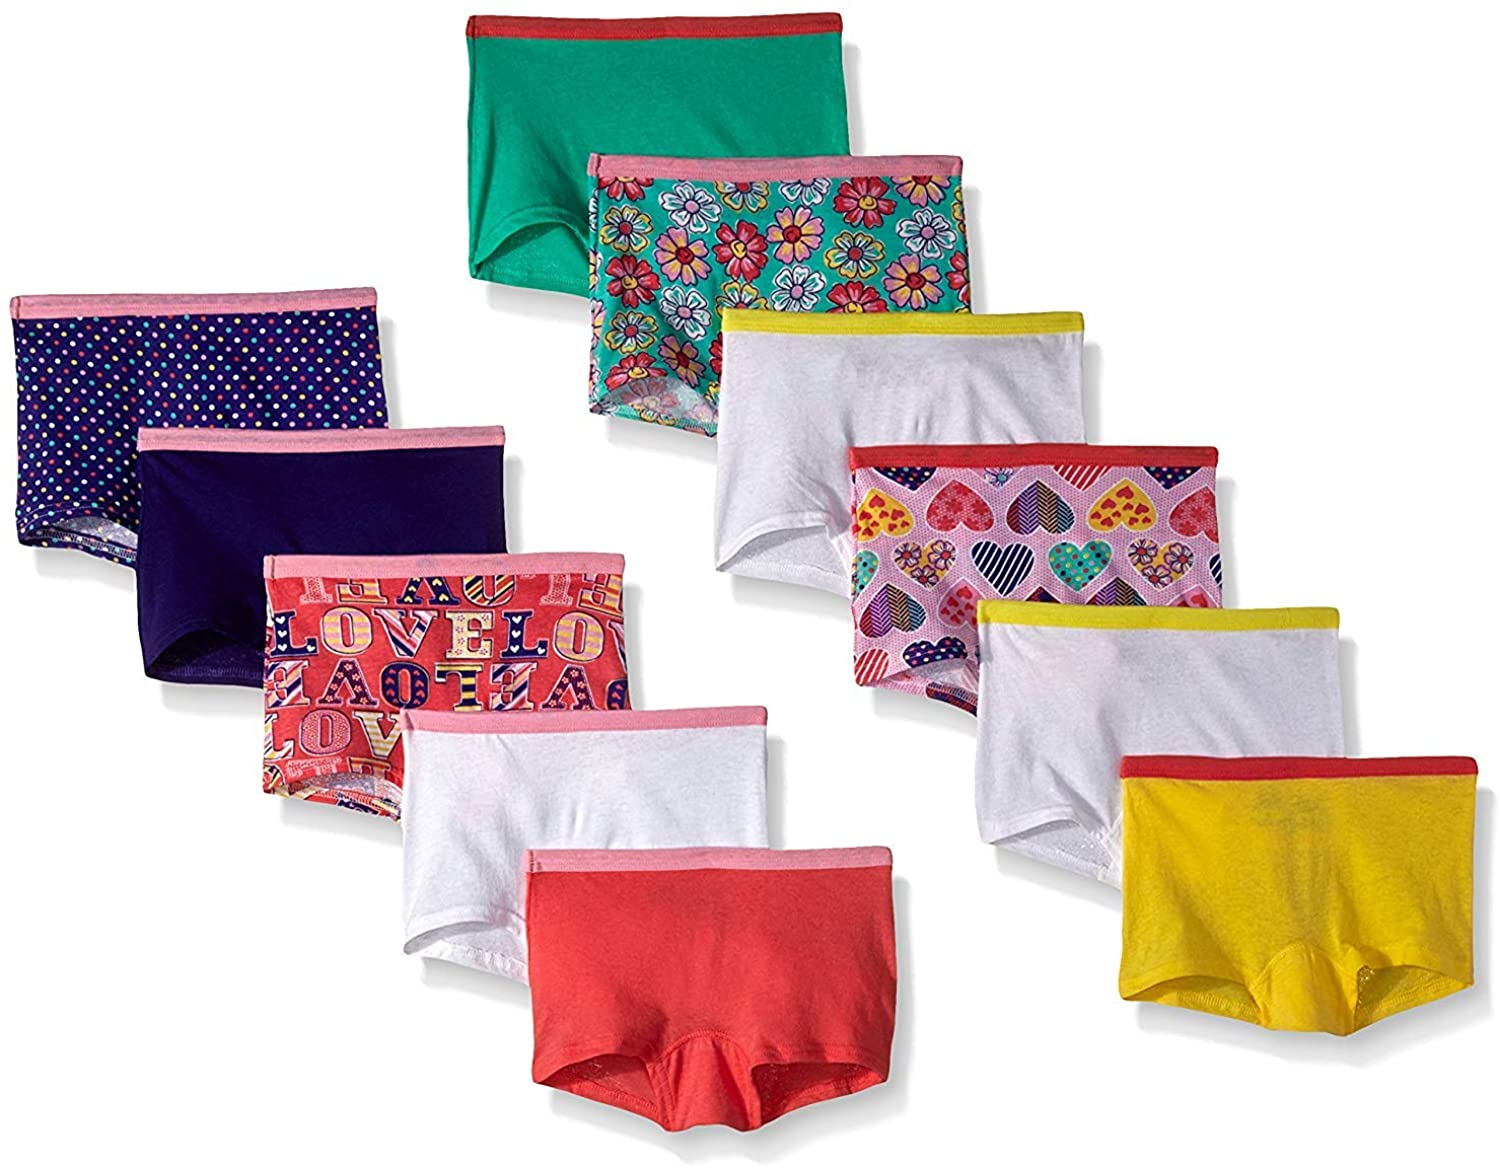 Fruit of the Loom Little Girls Assorted Boyshort (Pack of 11) (Size 6 (39-49 lbs. / Waist: 22), Assorted)